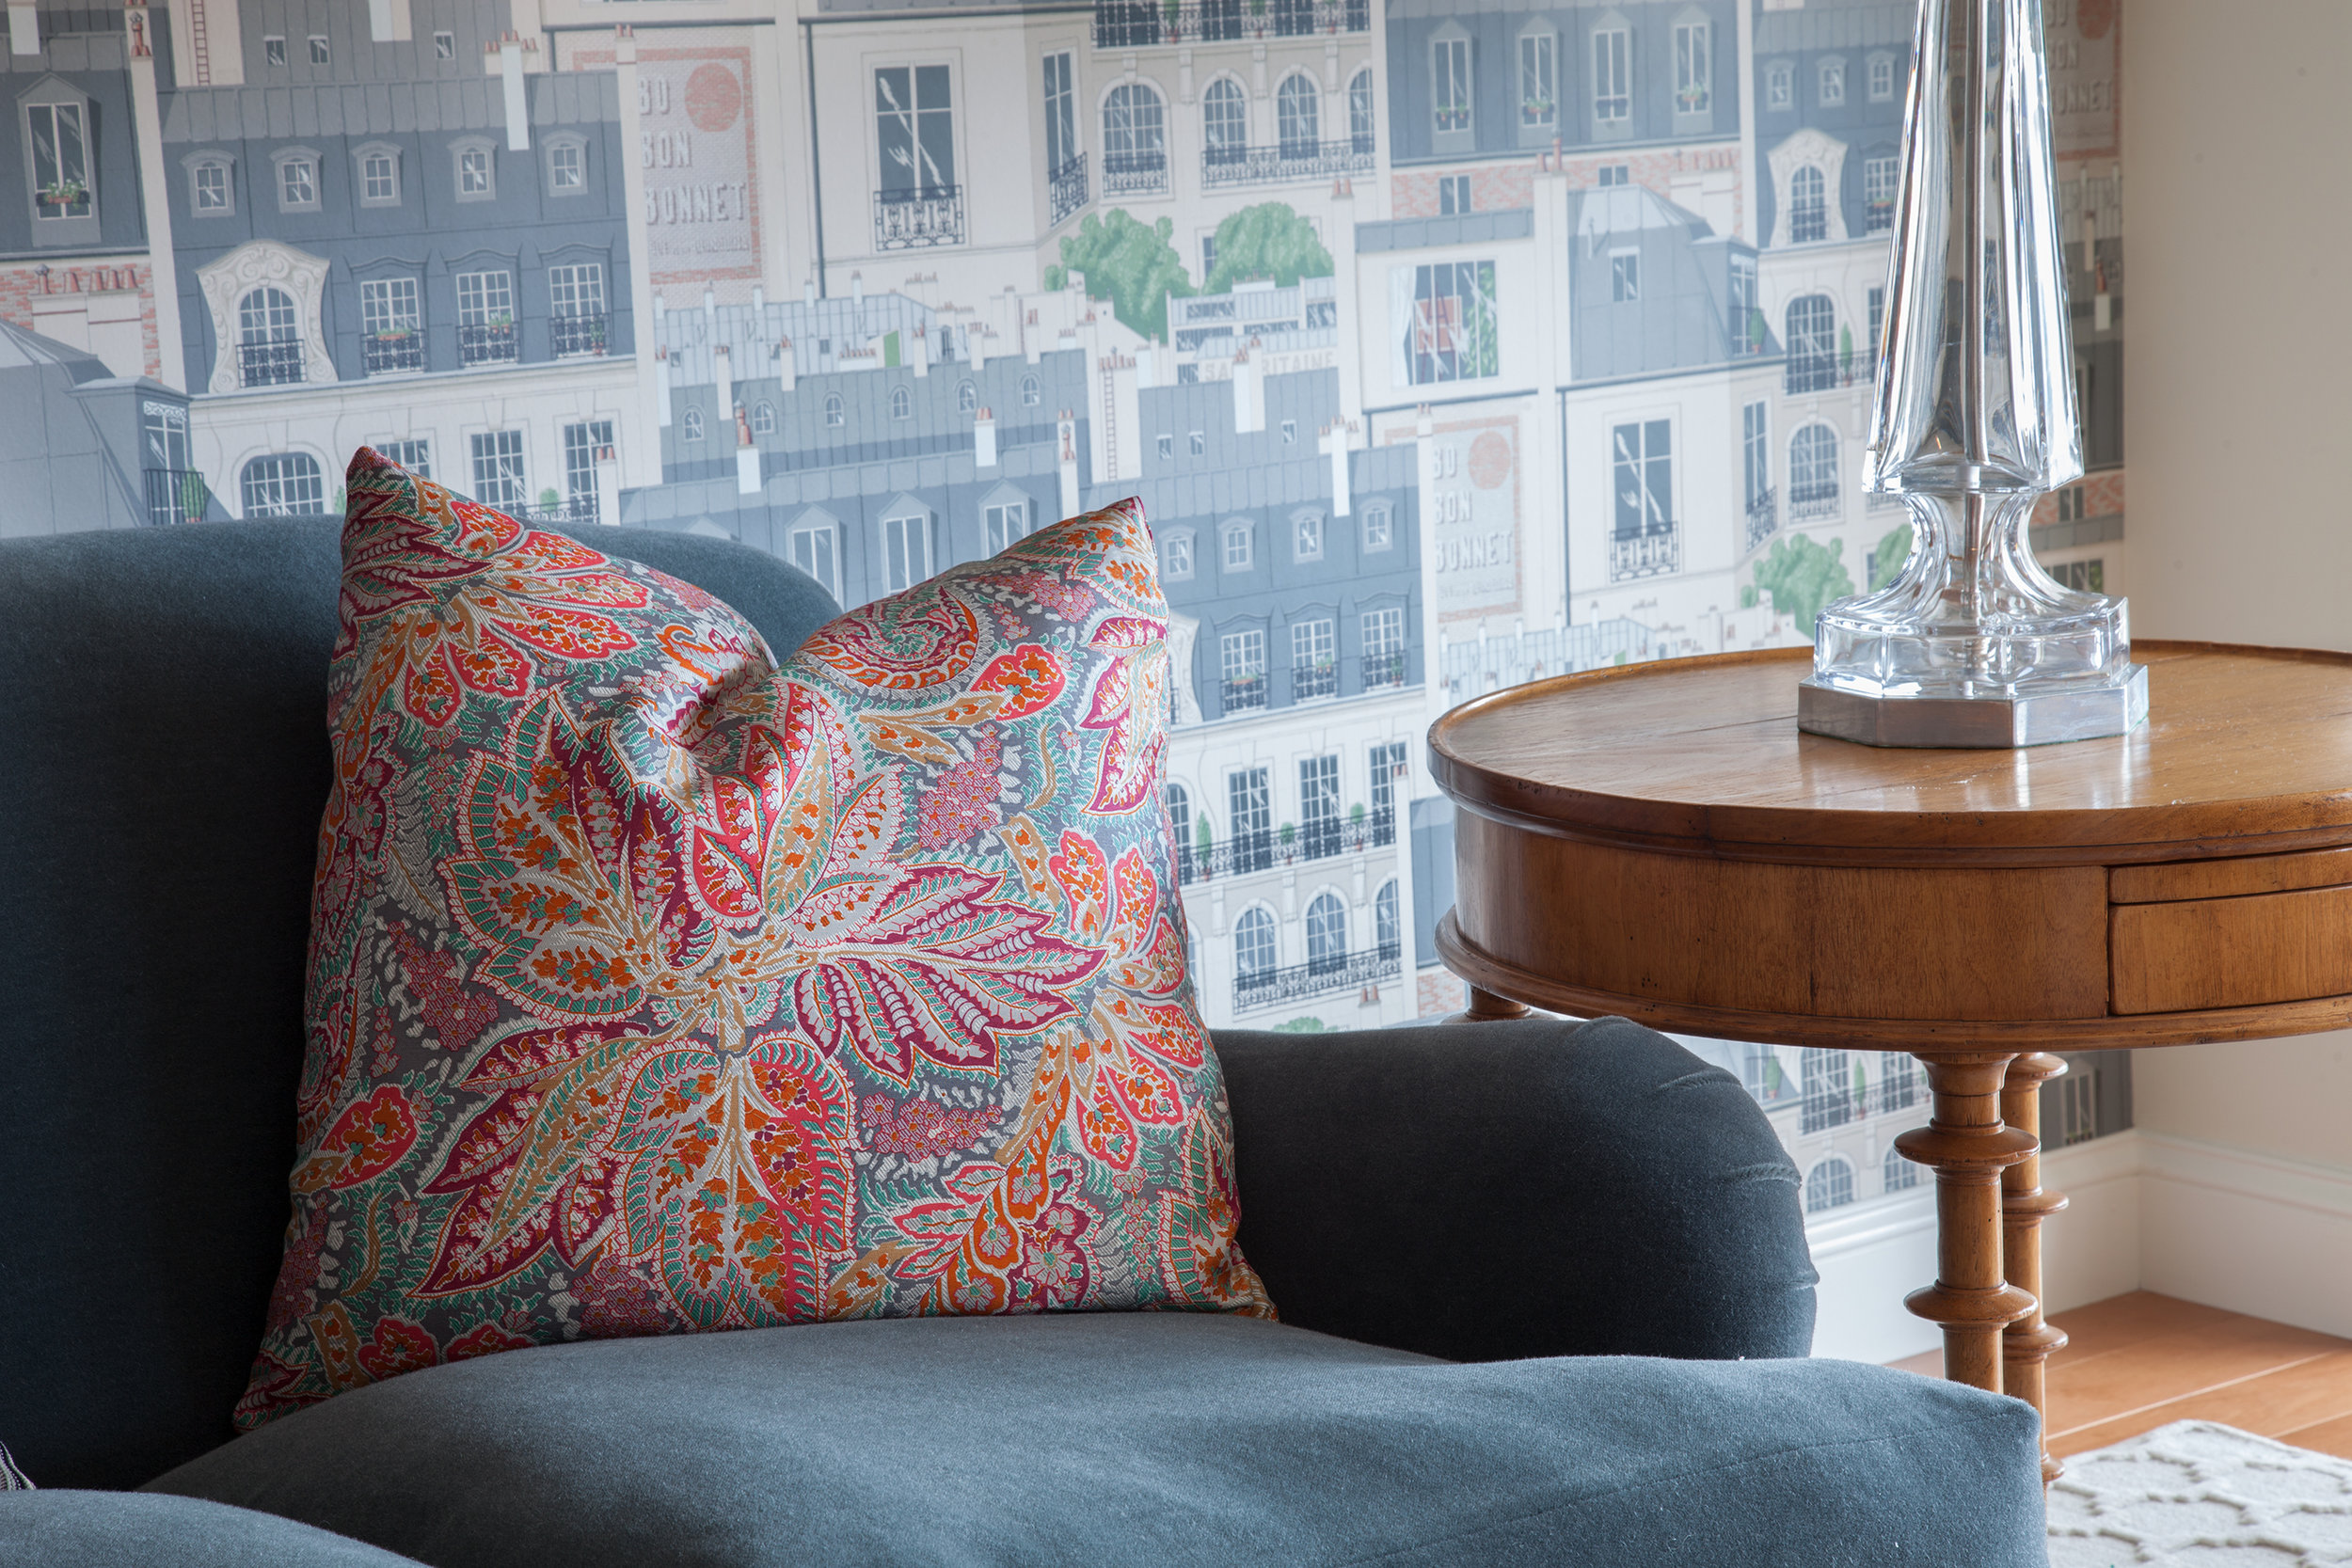 A playful Paris city scene wallpaper contrasts the colorful floral pillows. Crystal table lamps bring a sparkle to the room.